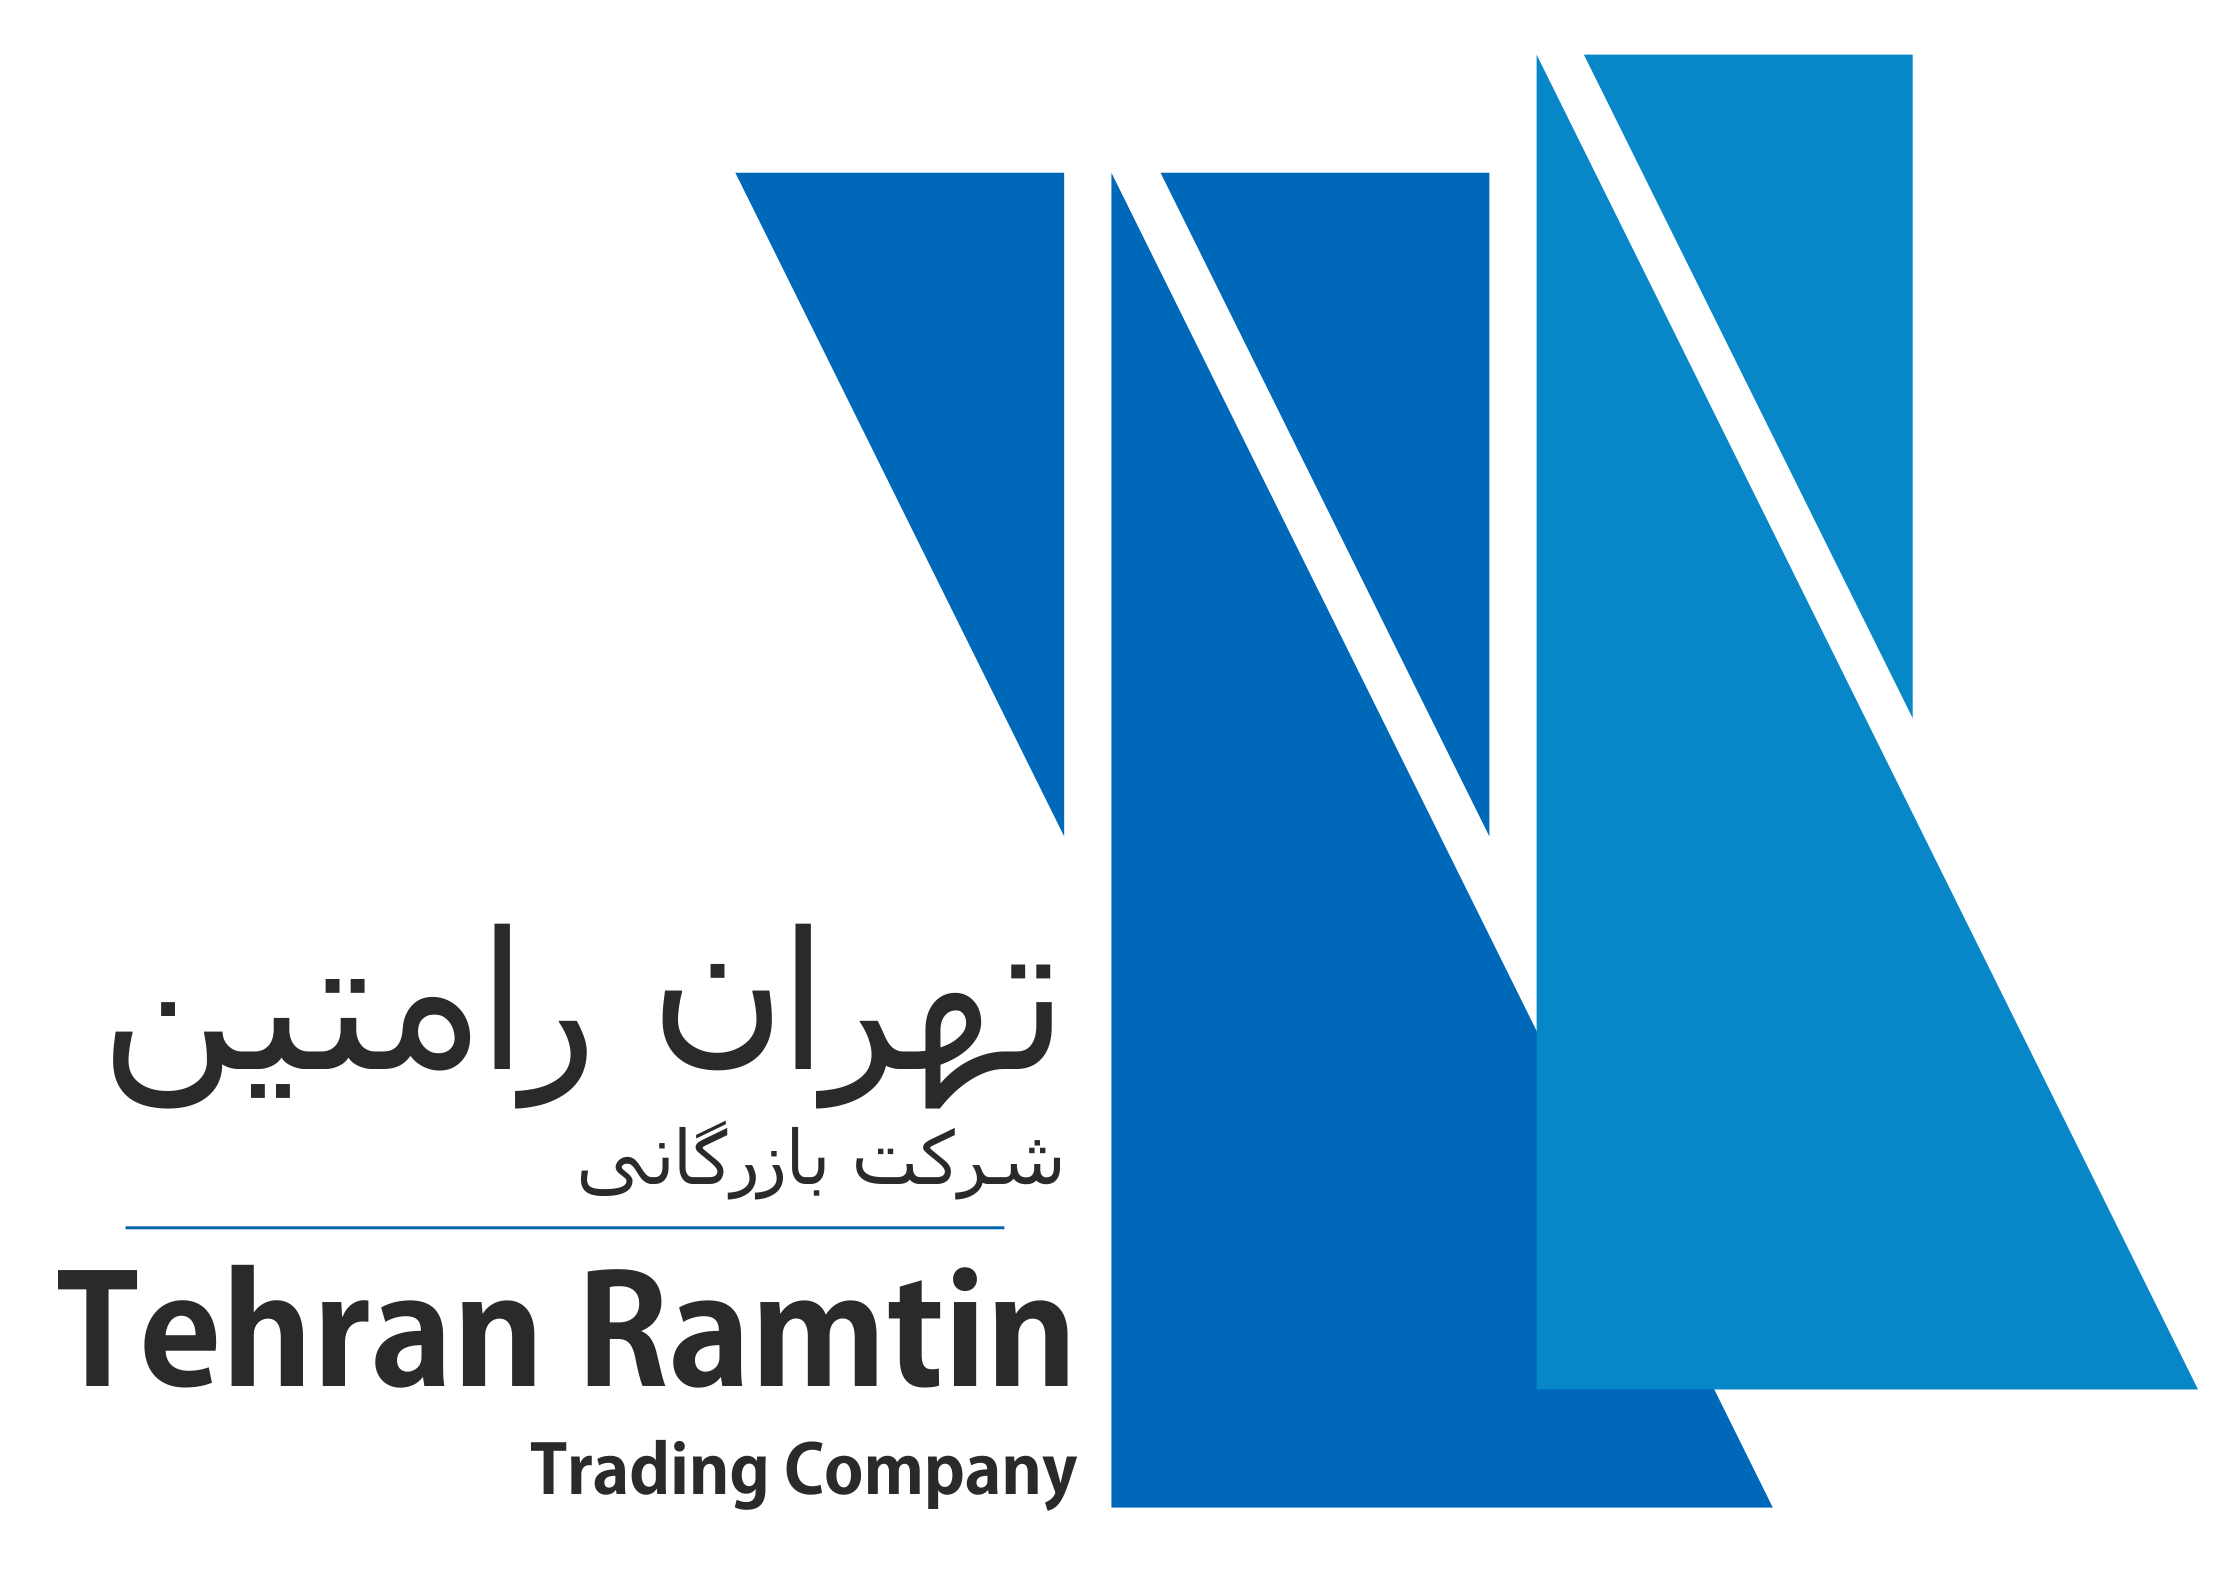 Tehran Ramtin co.